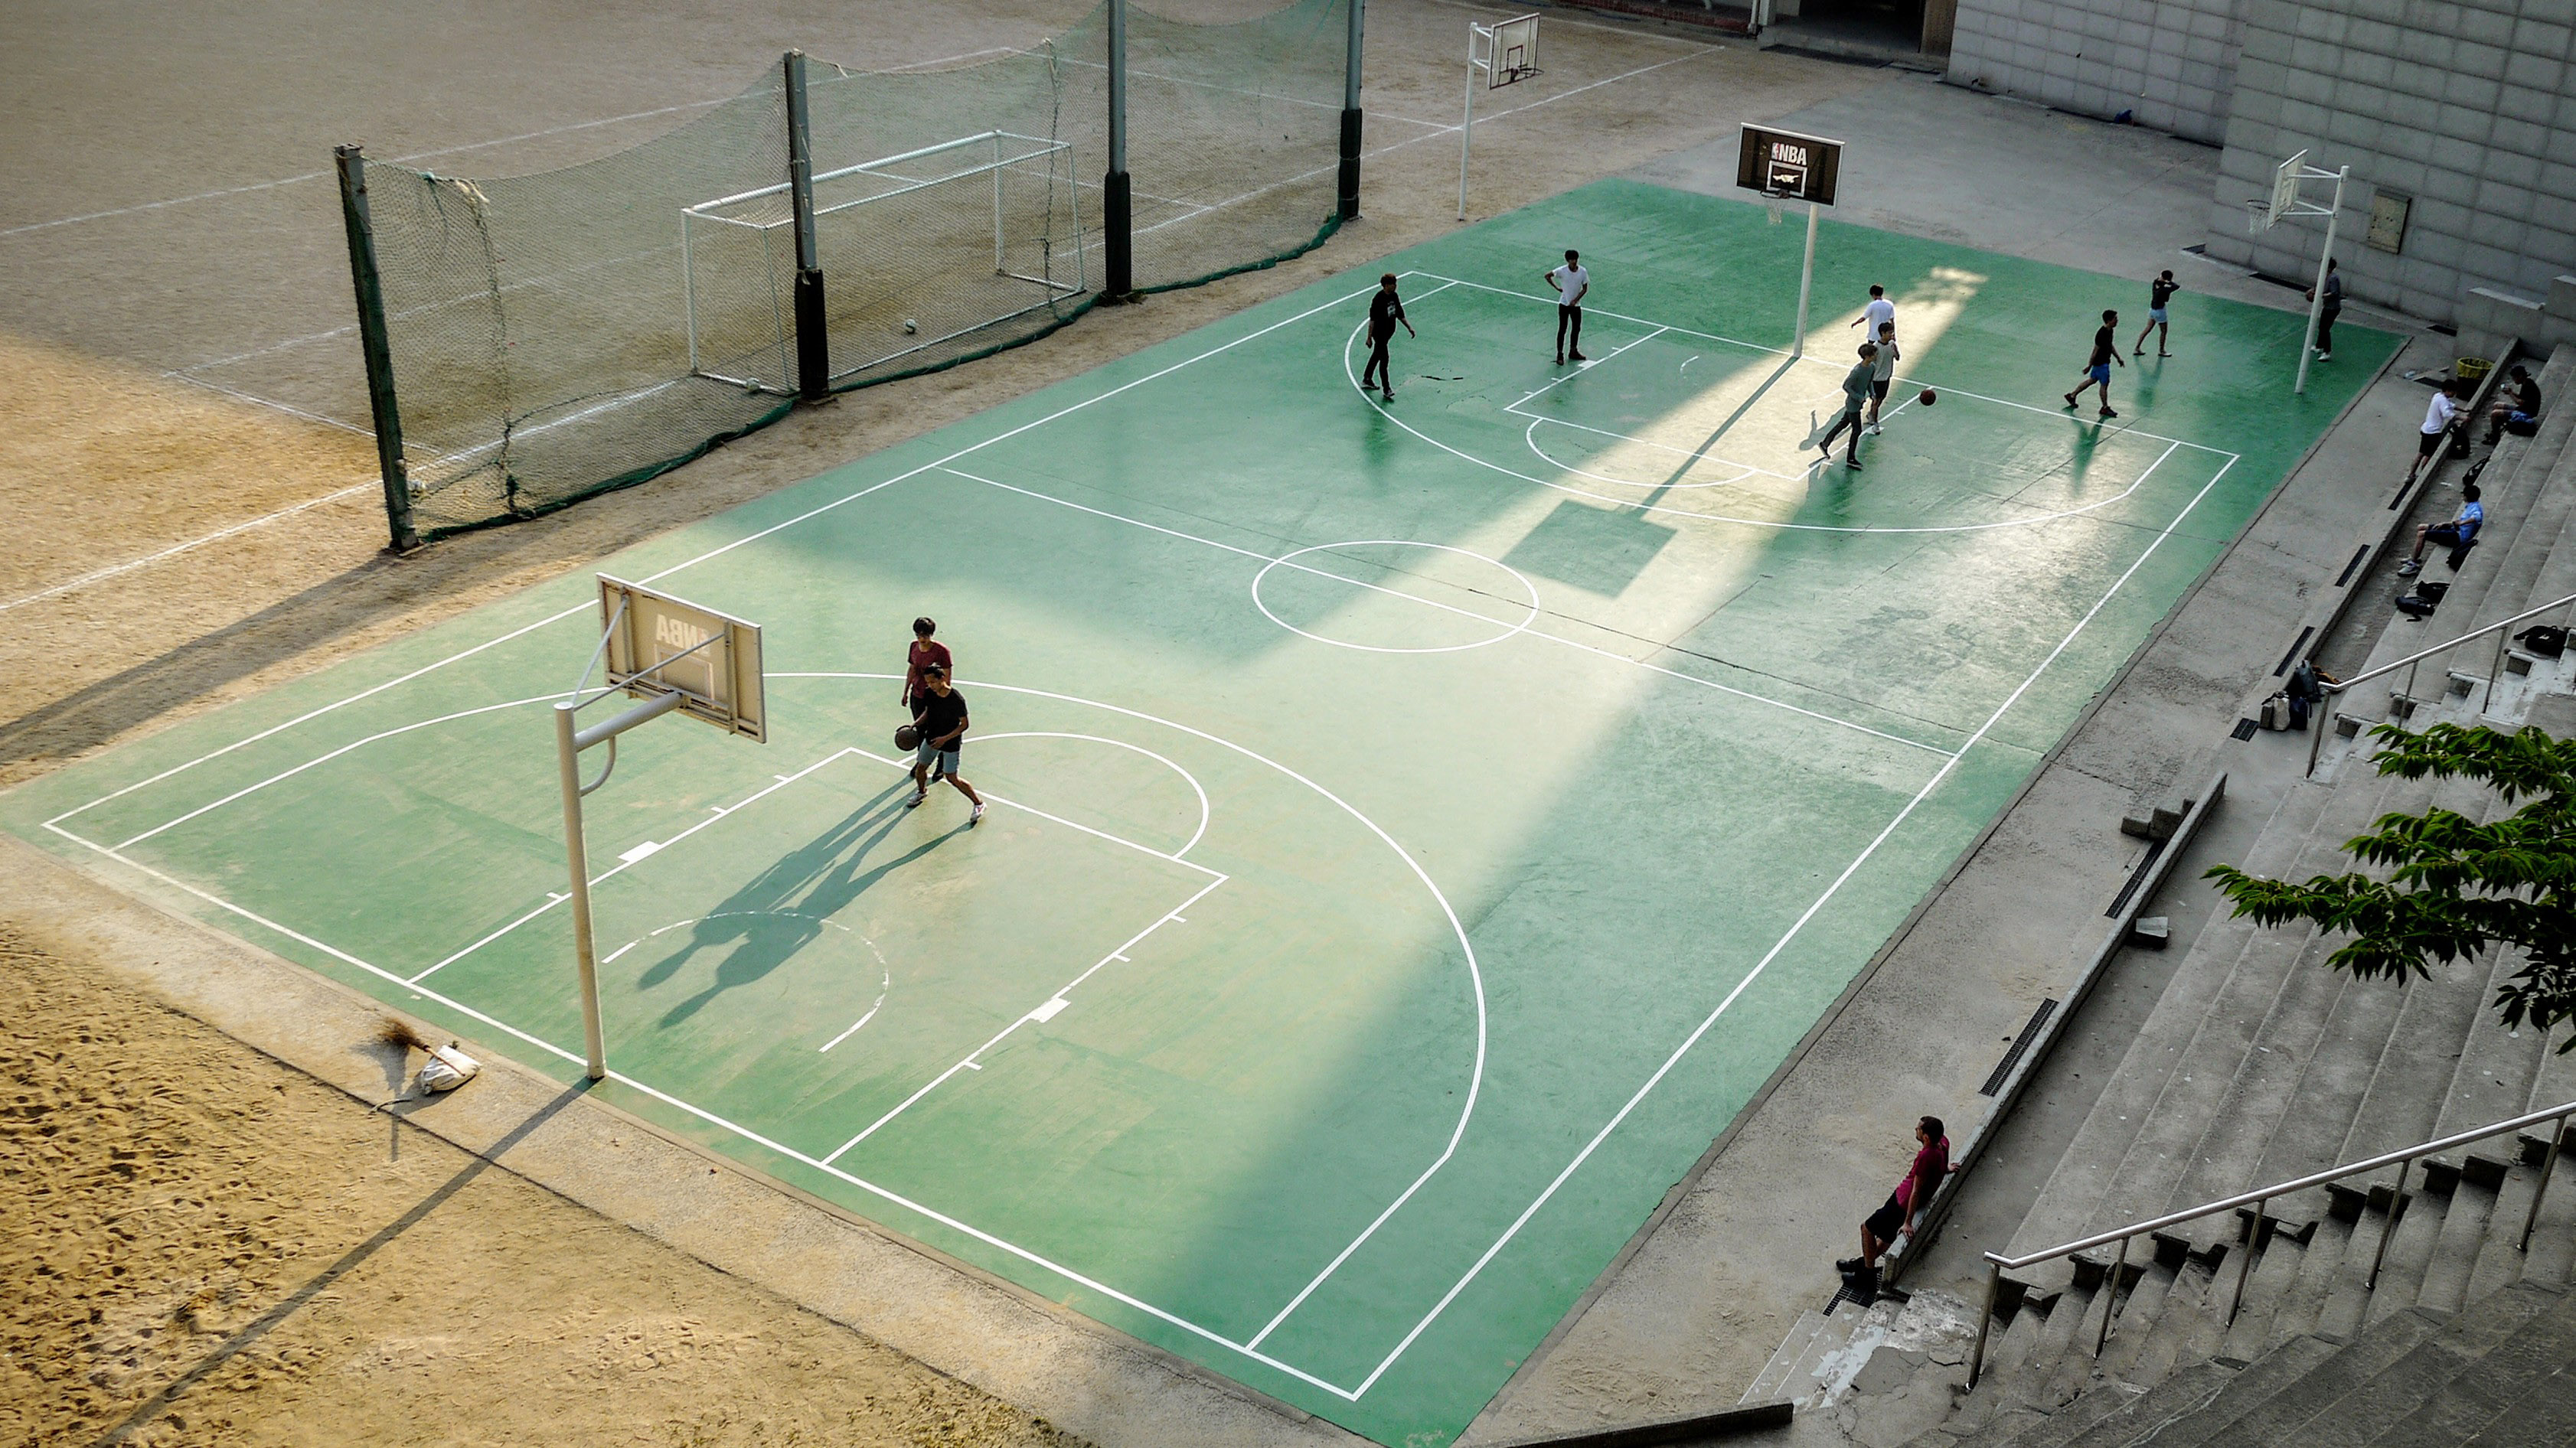 People On Basketball Court Image Free Stock Photo